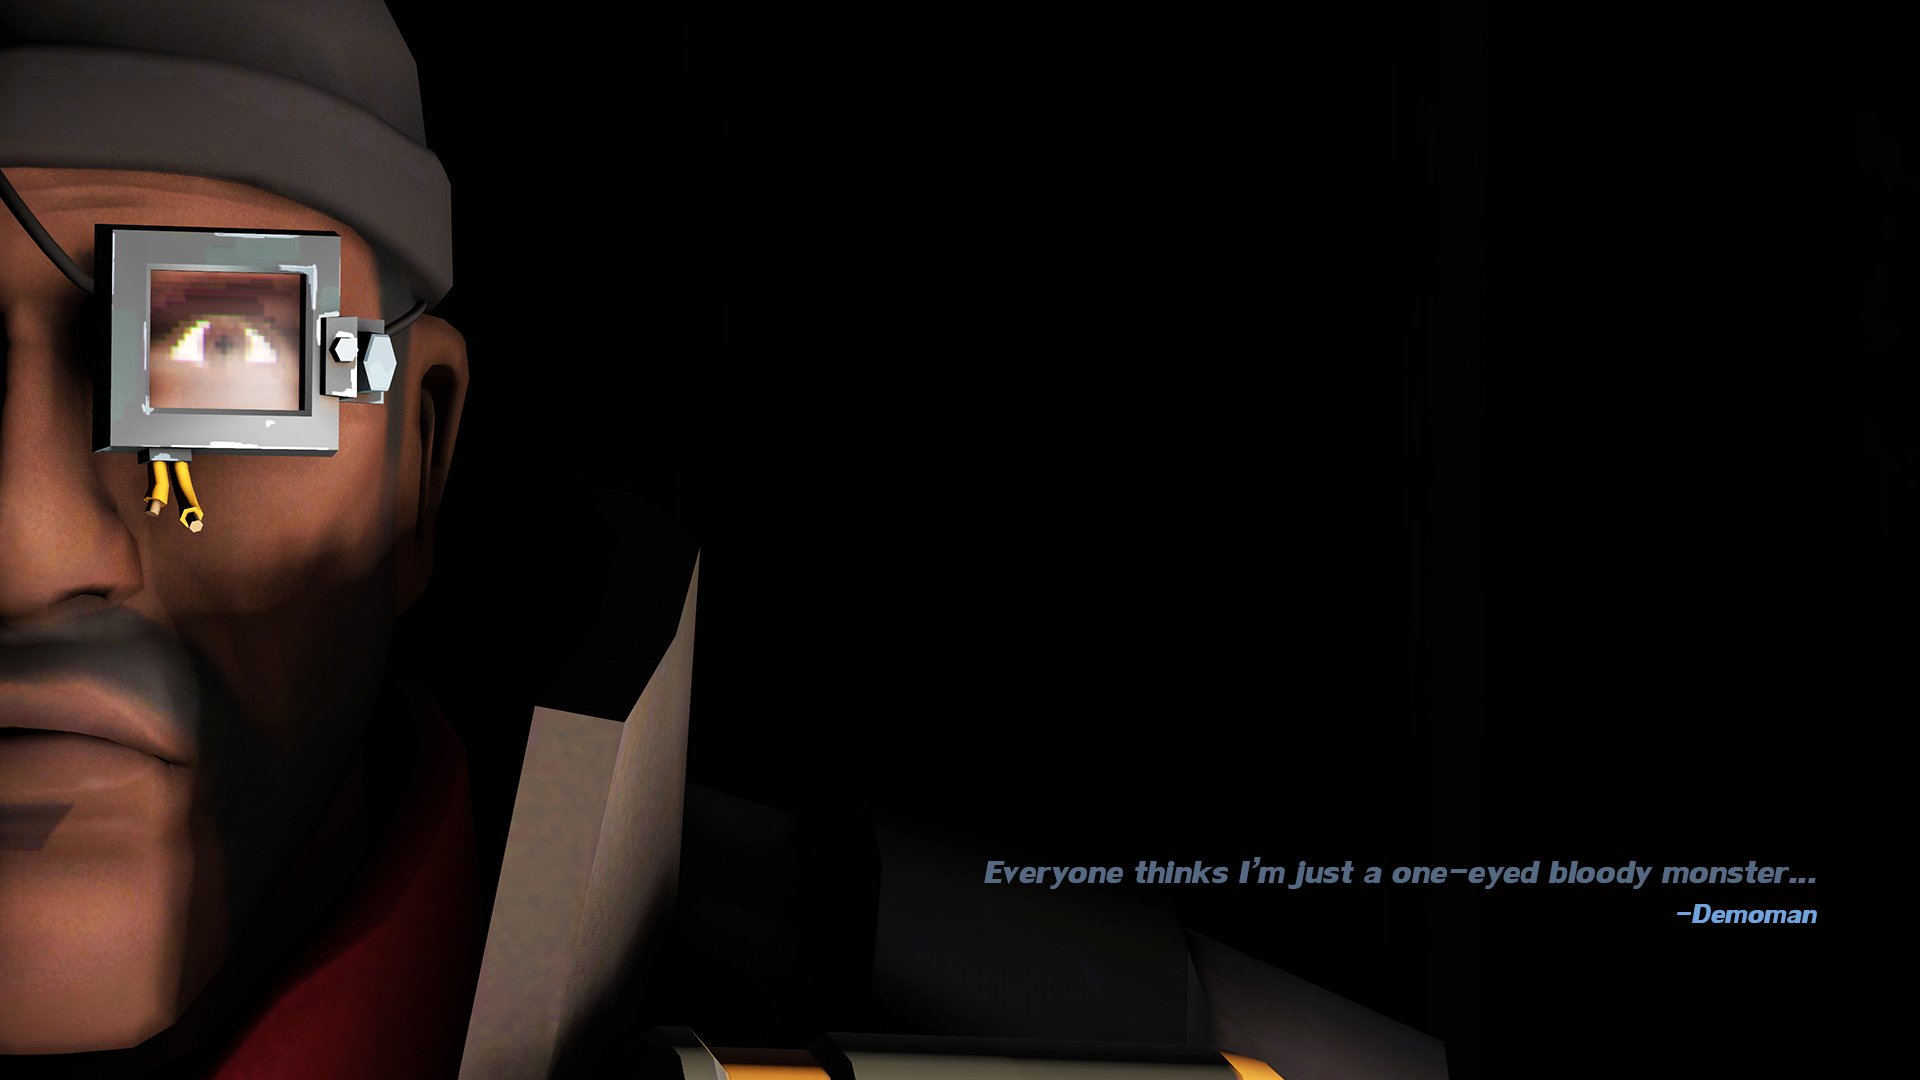 TF2 Demoman HD Wallpaper Background Image 1920x1080 ID 1920x1080